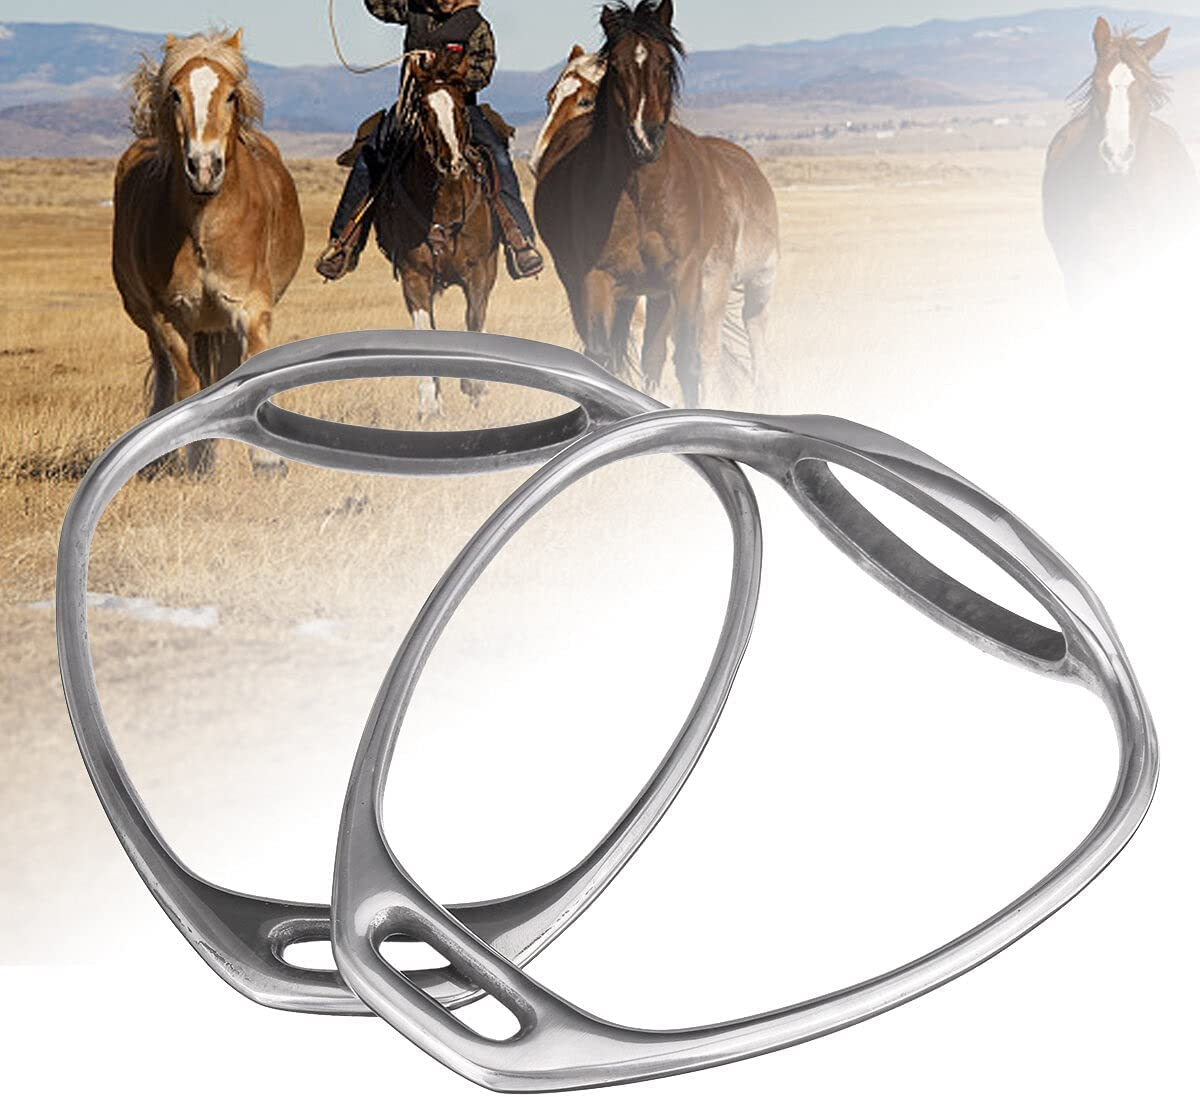 1 Pair Max 43% OFF Stainless Steel Double Bent Stirrups Leg Safety Sad Ranking TOP16 Horse